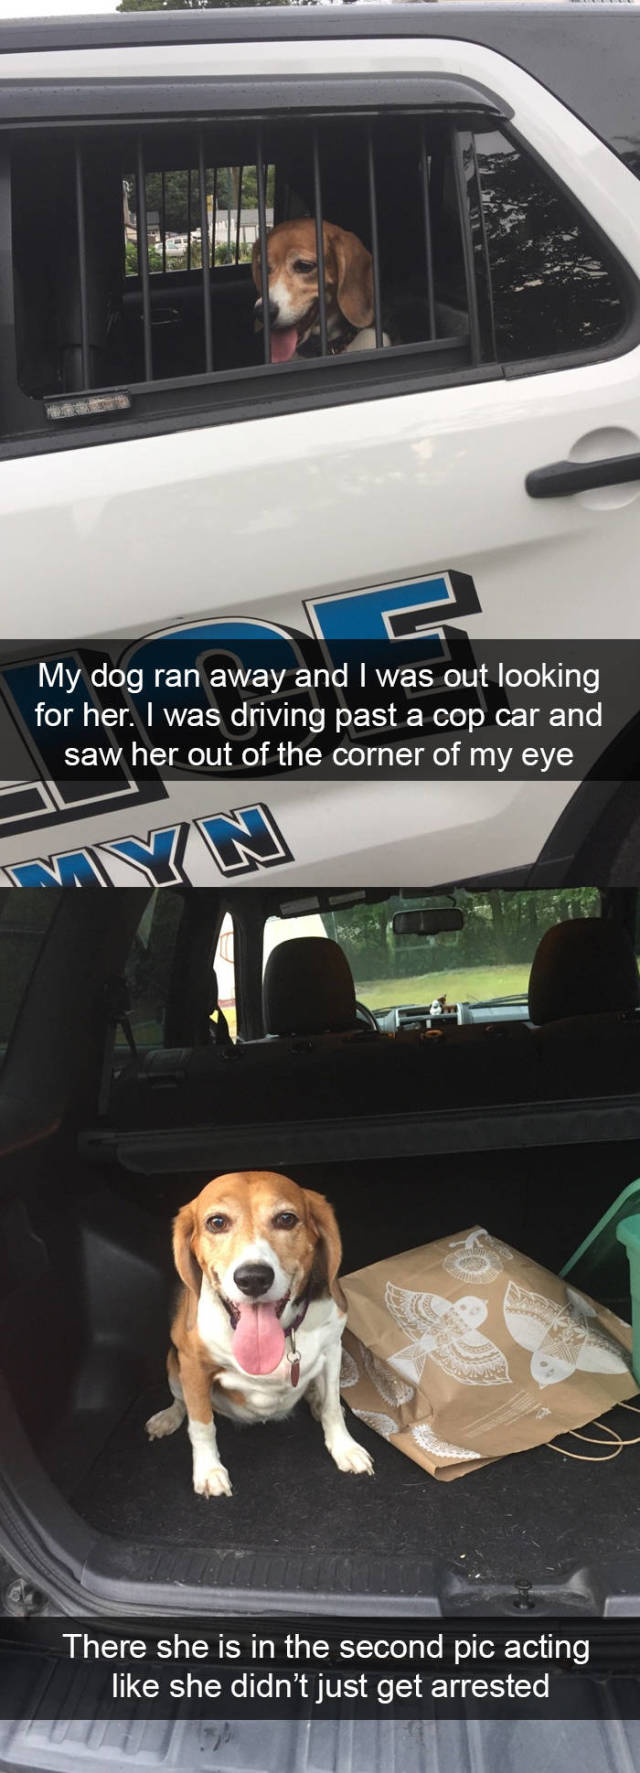 Dogs Are The Best Snapchat Material!